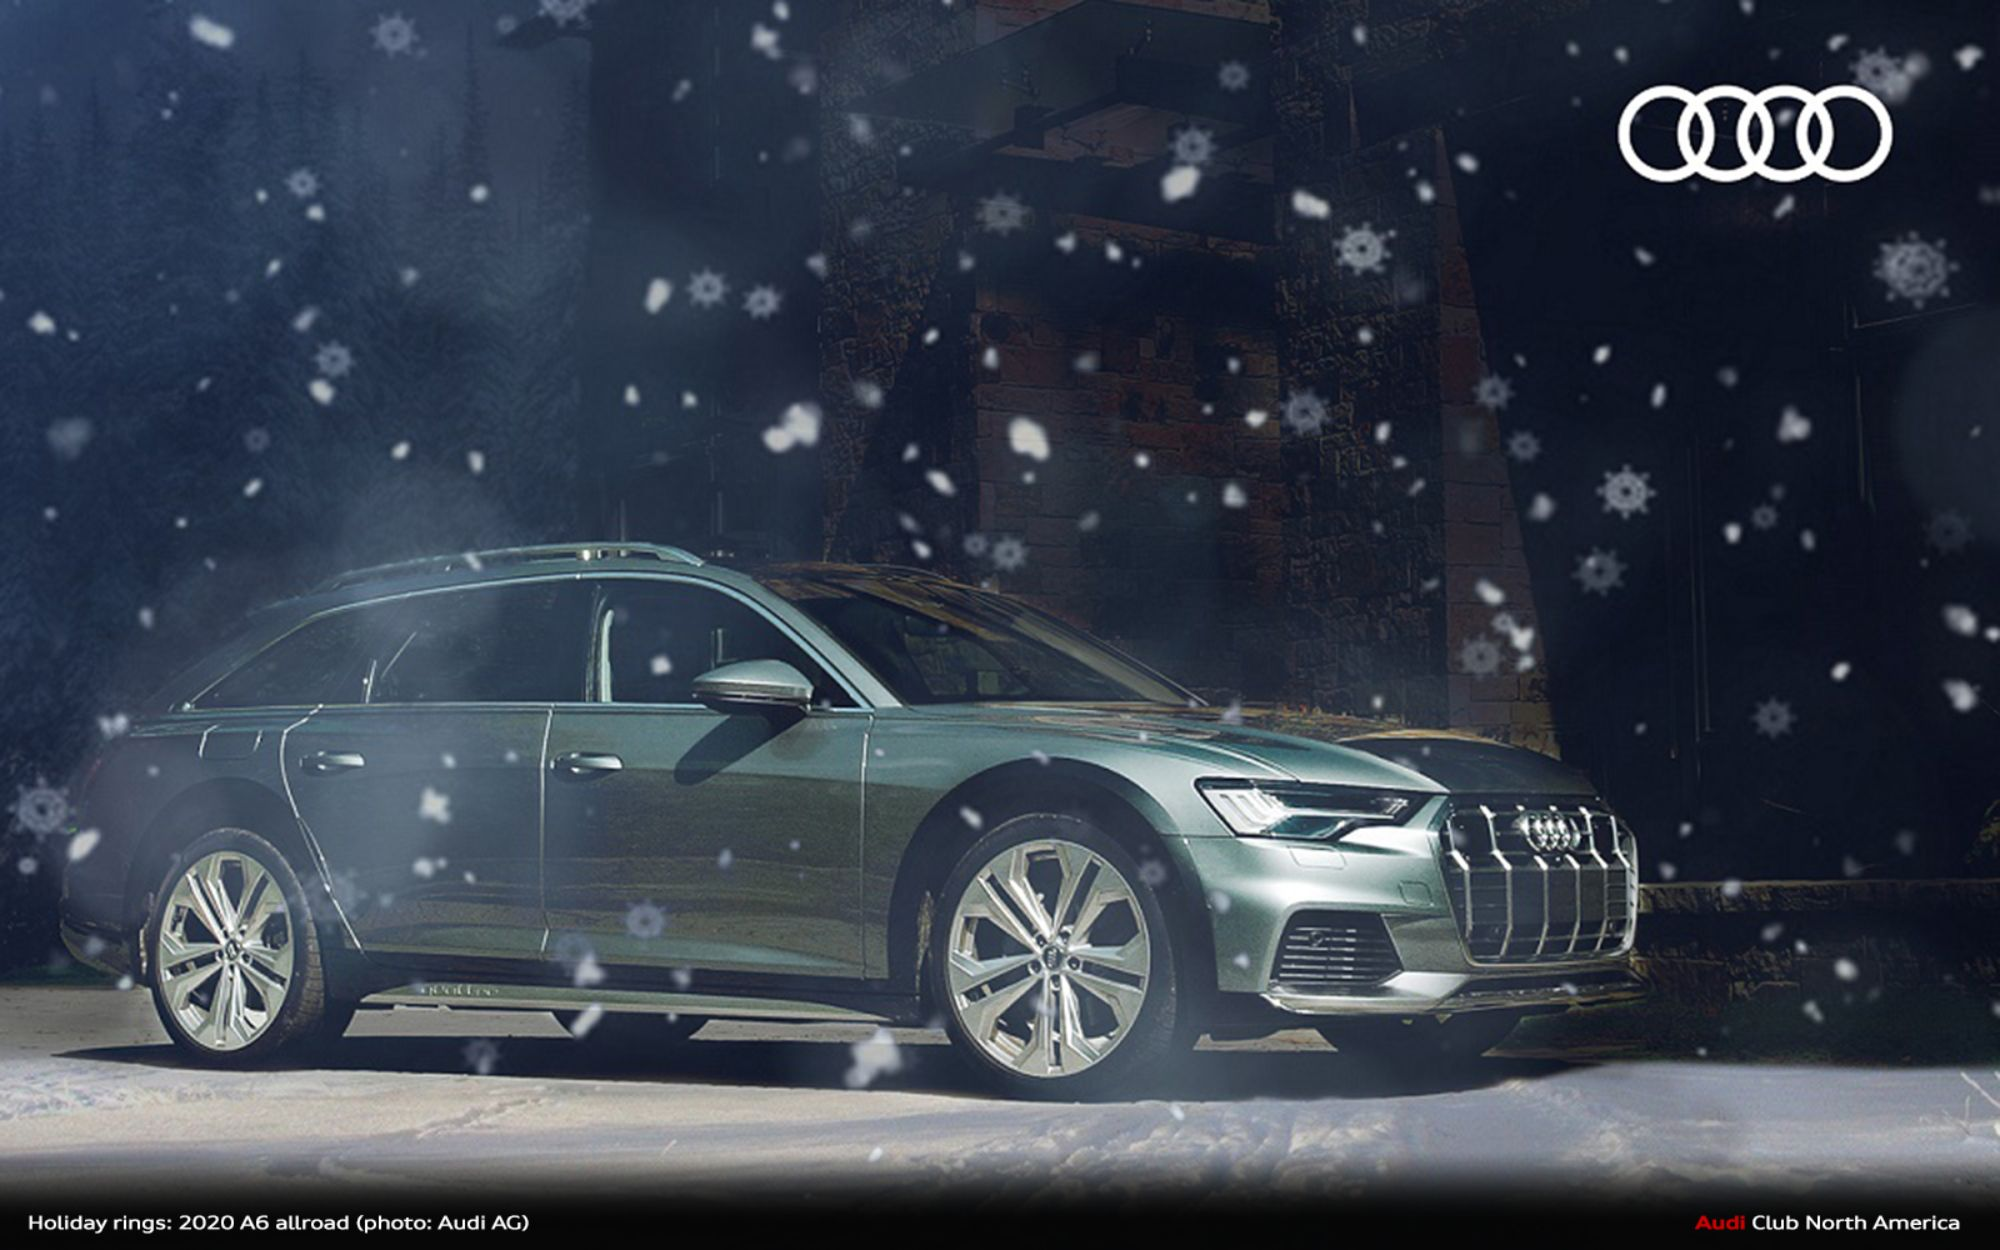 New Sleigh, Who Dis? 2020 Audi A6 allroad Arrives In Time For The Holiday Season